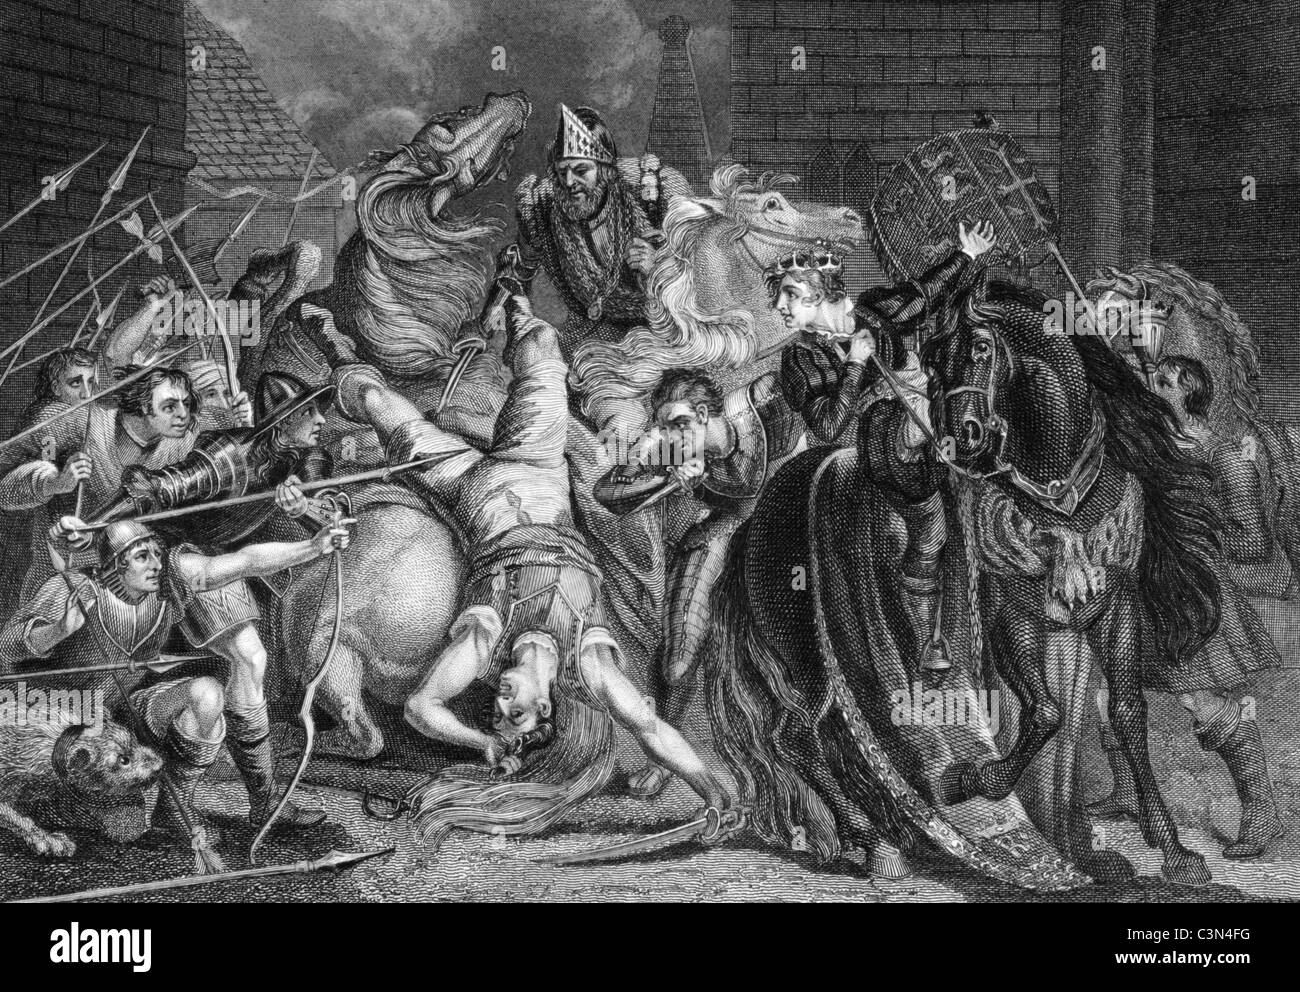 William Walworth Lord Mayor of London Killing Wat Tyler in Smithfiled in 1381 on engraving from the 1800s. - Stock Image